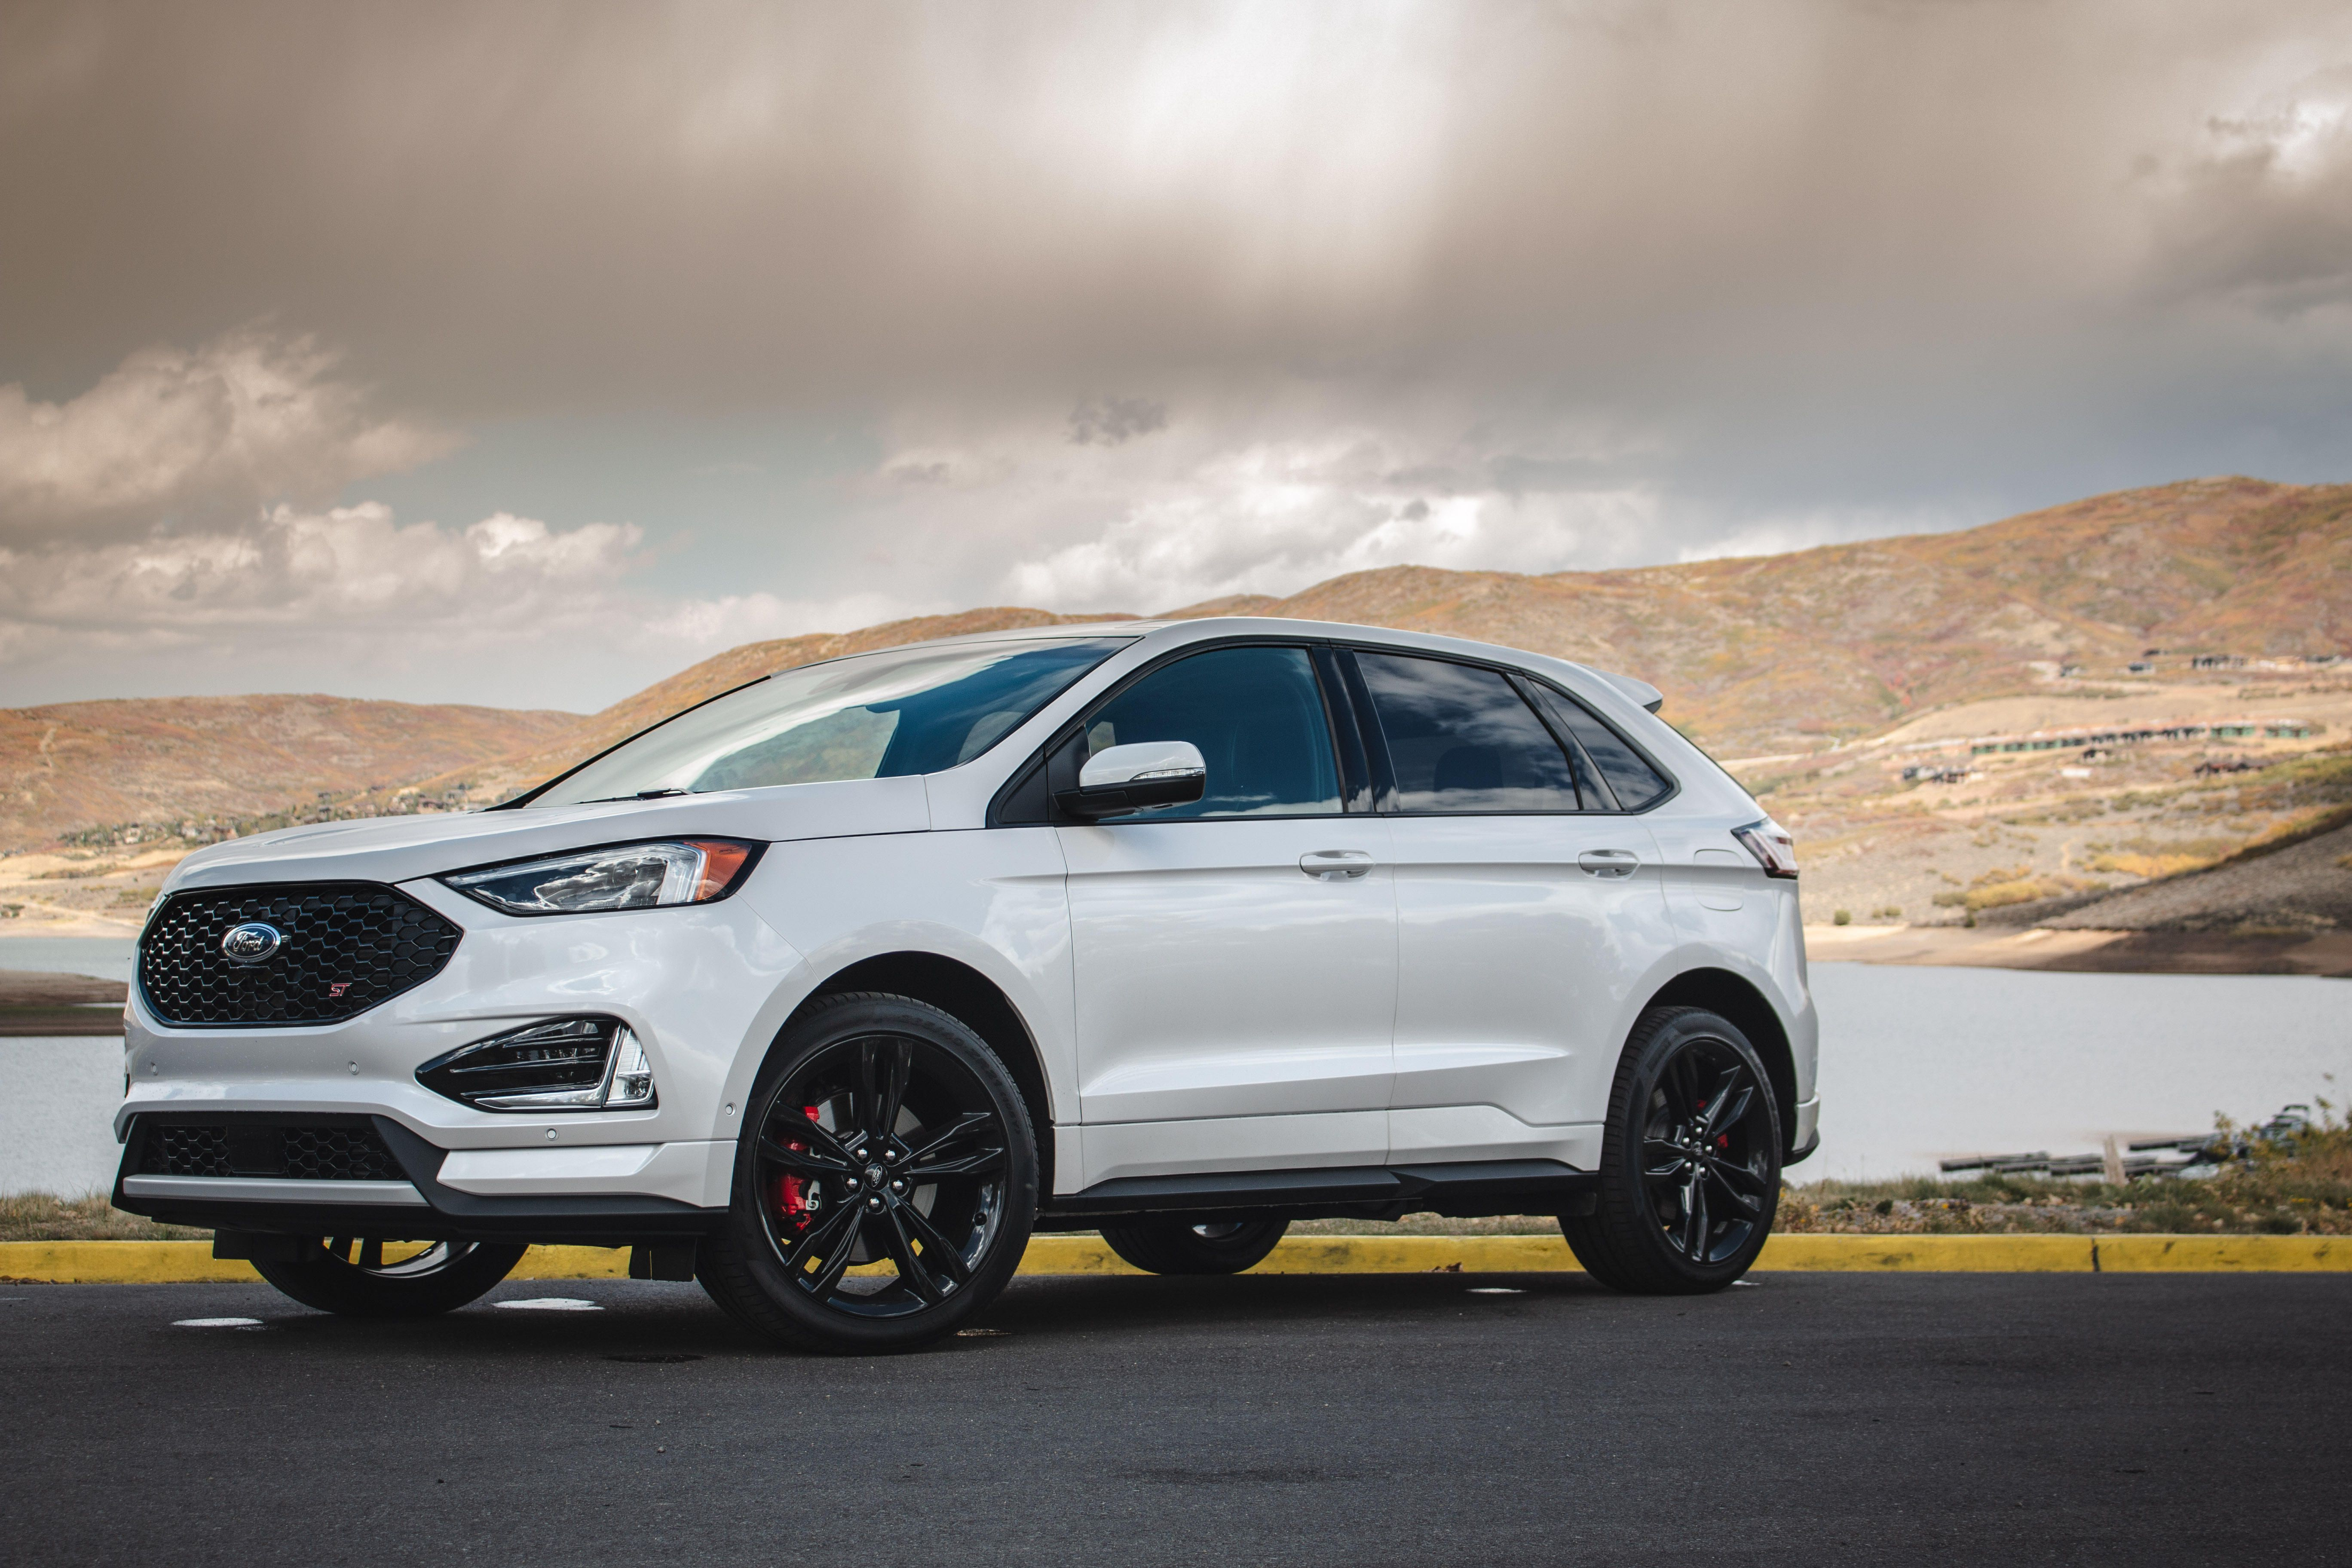 2019 Ford Edge St First Drive Review Potent And Practical Ford Edge Ford Edge Sport Ford Suv